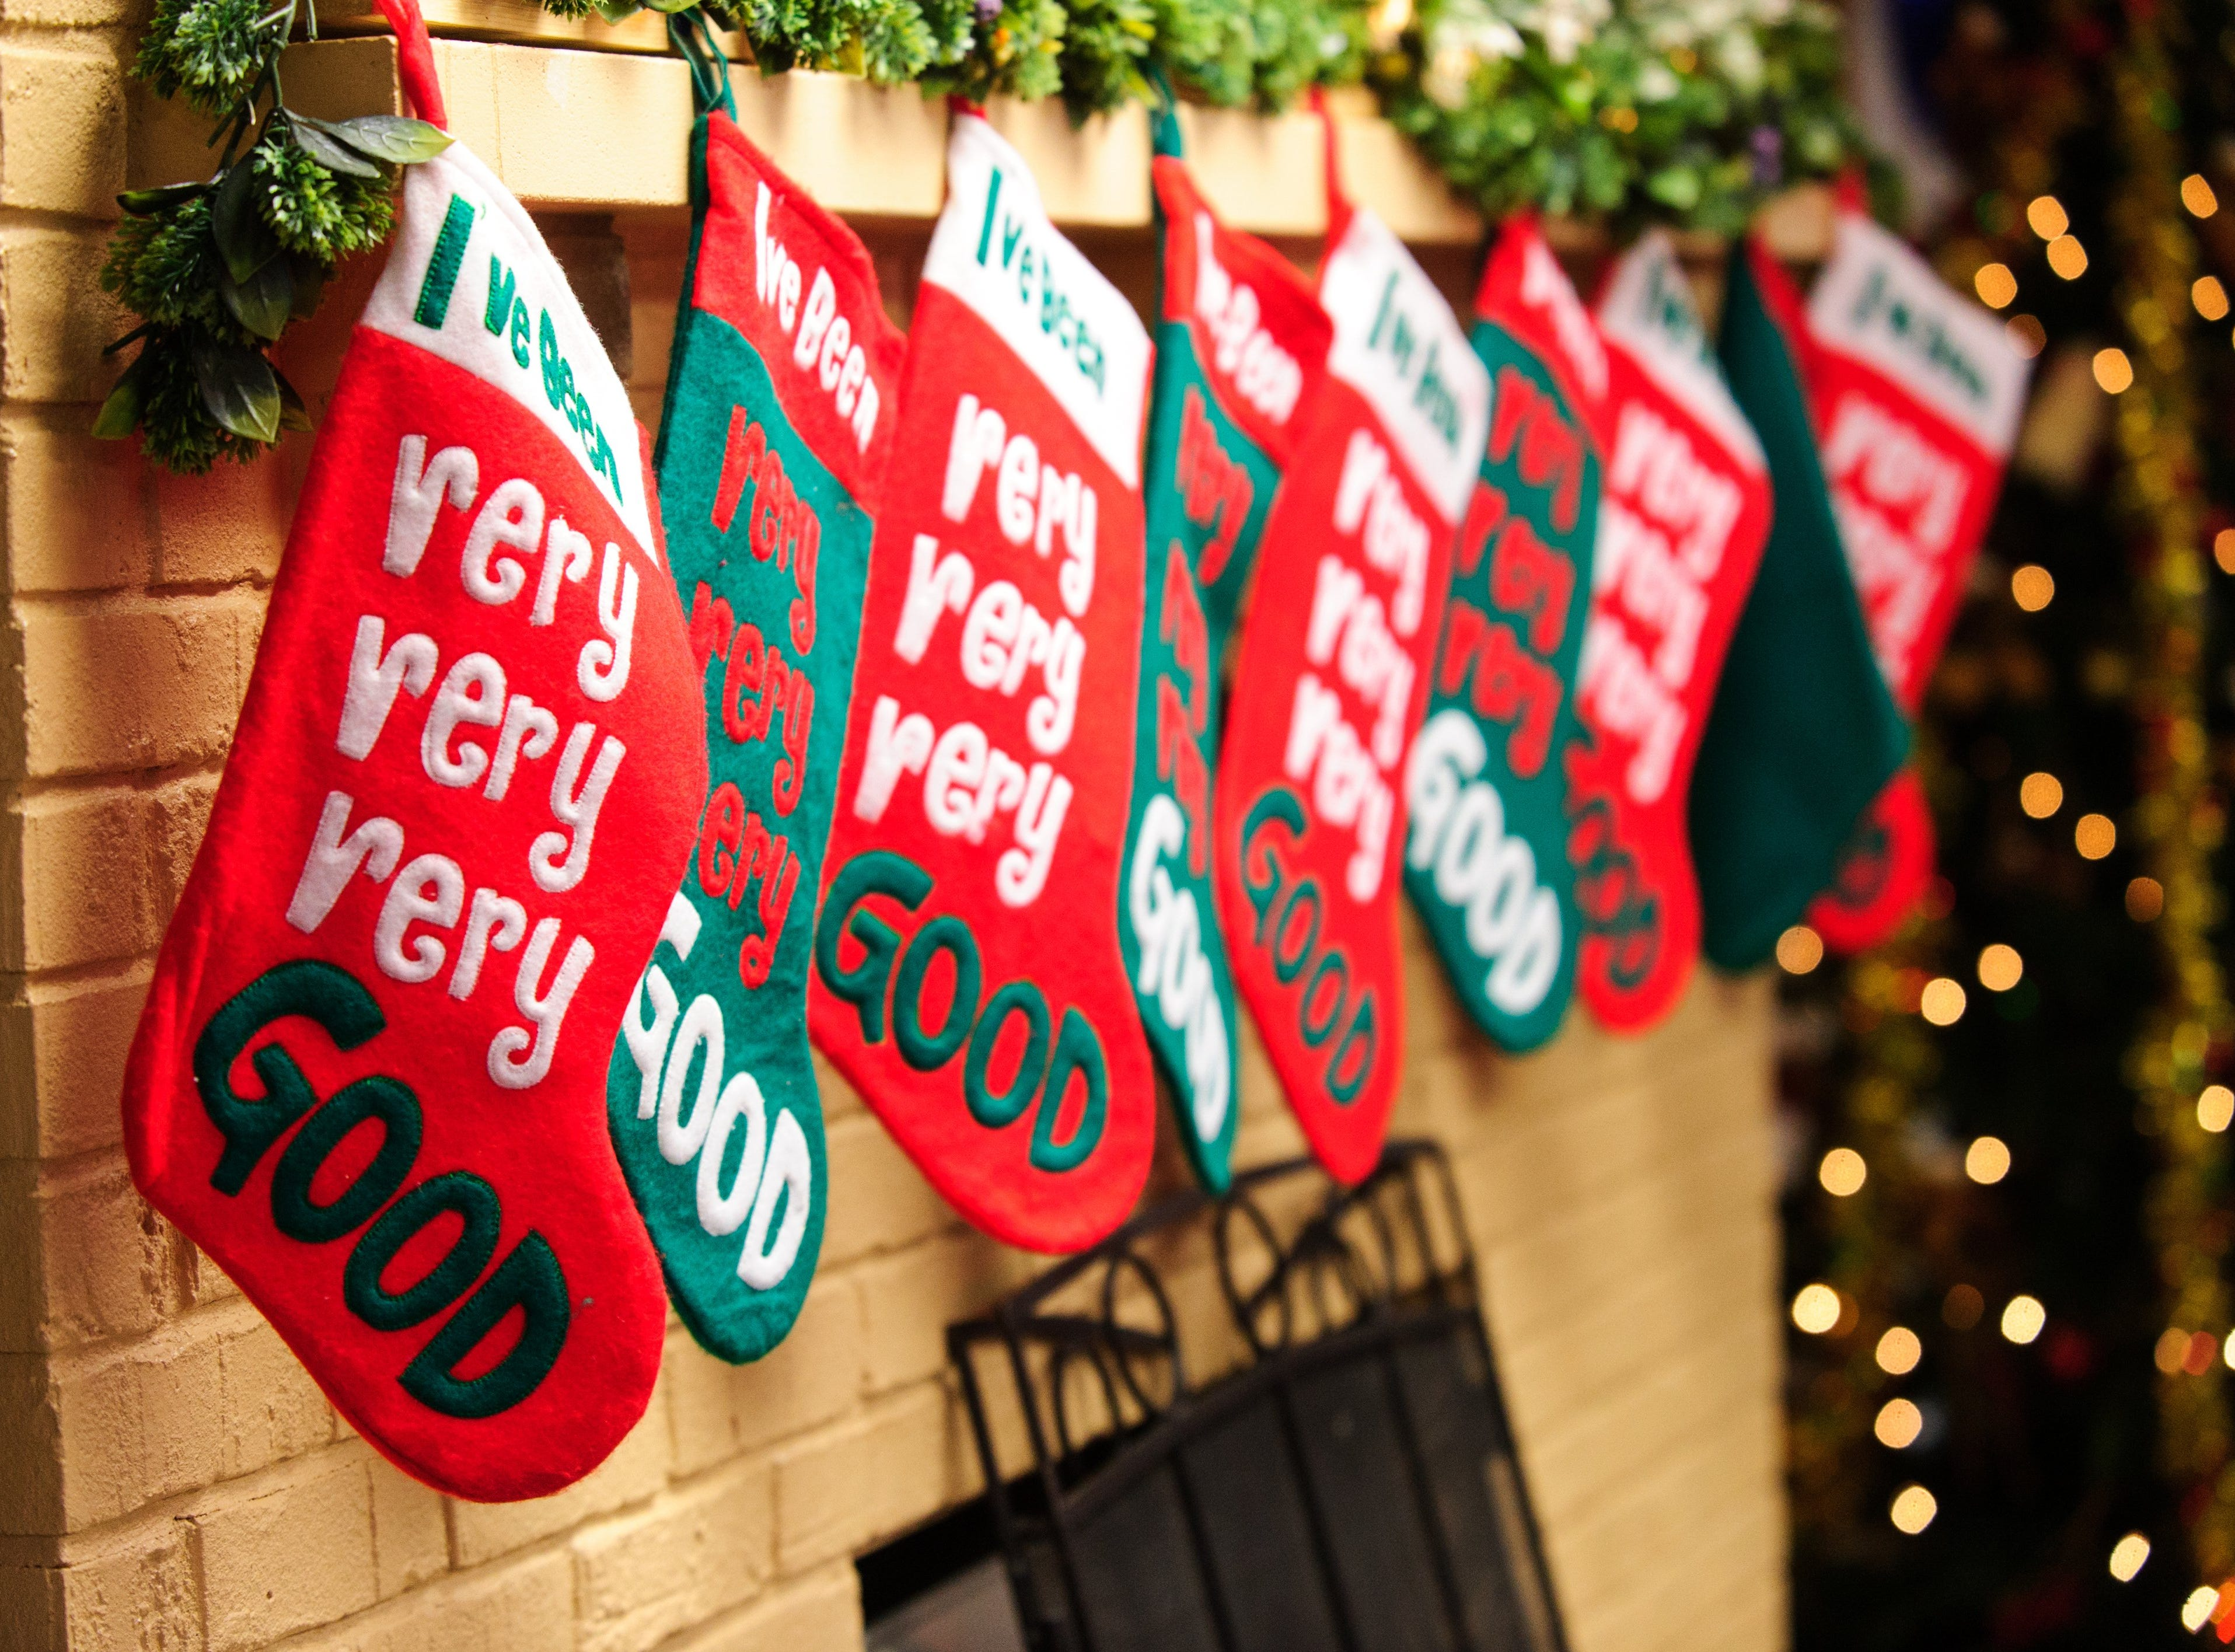 """I've been very very very good"" stockings hung off the mantle at  at FOP Camp on Happe Road on Evansville Northwest side Saturday morning Dec. 14, 2013 before the arrival of 82 school children, K thru 2nd graders for the annual FOP Christmas party. For close to 50 years the FOP has been have Christmas party for Evansville's needy children."